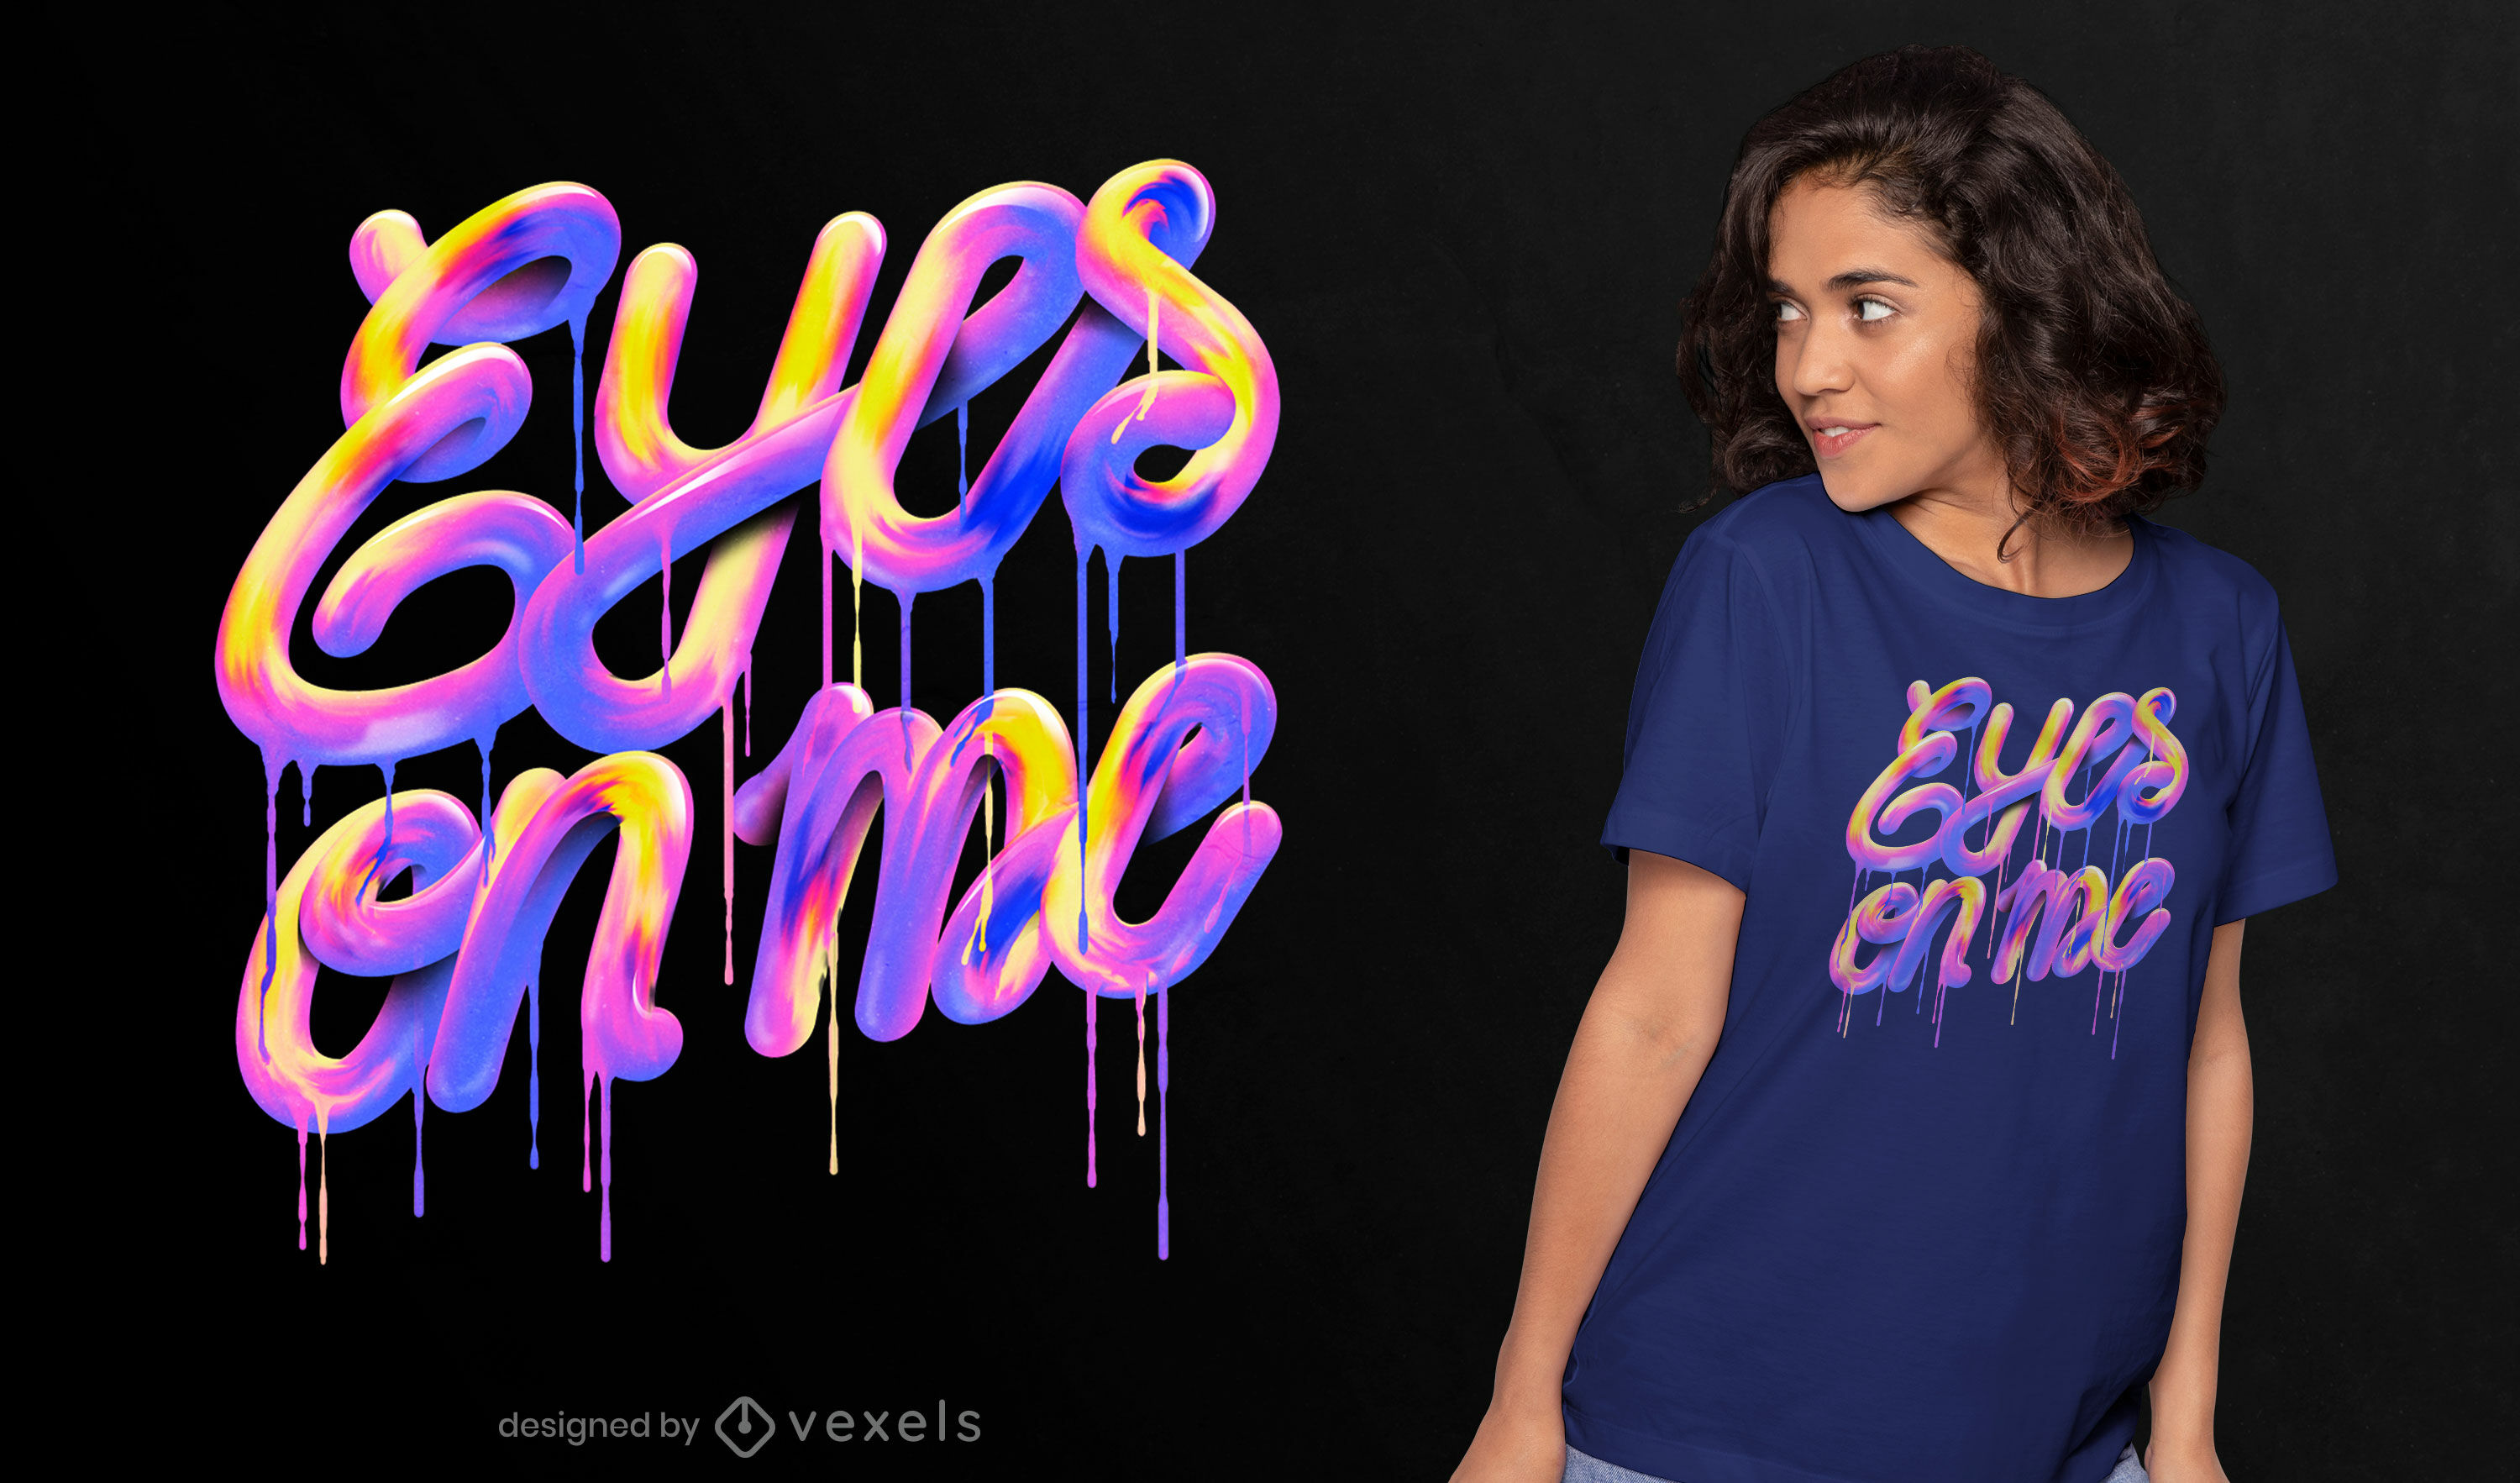 Eyes on me lettering psd t-shirt